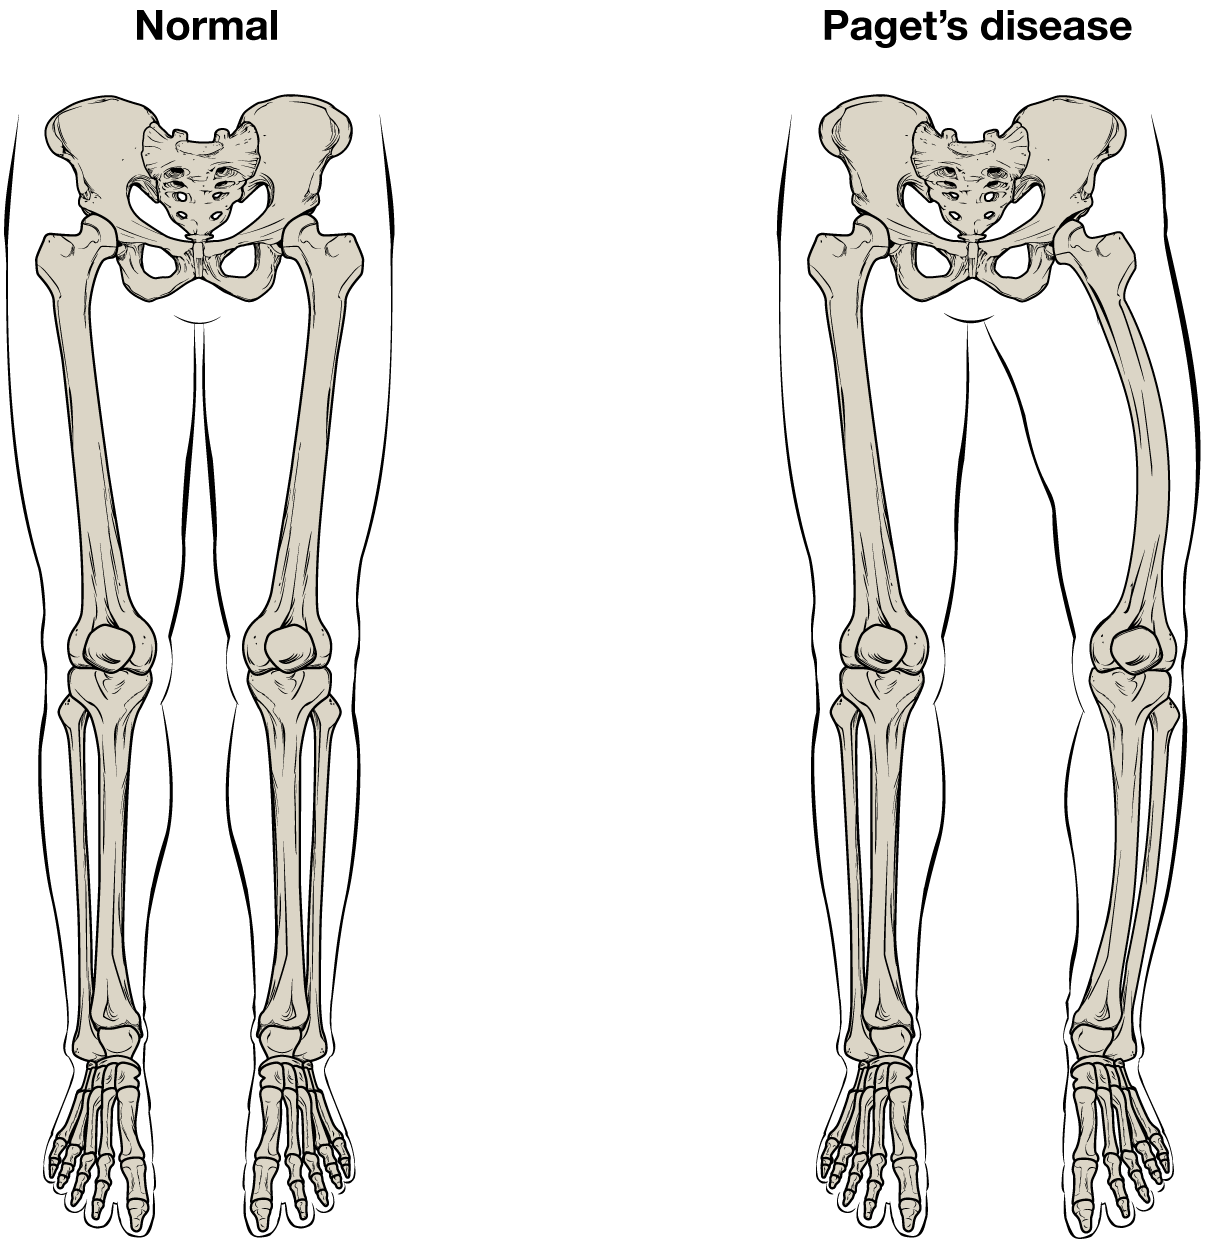 hight resolution of normal leg bones are relatively straight but those affected by paget s disease are porous and curved